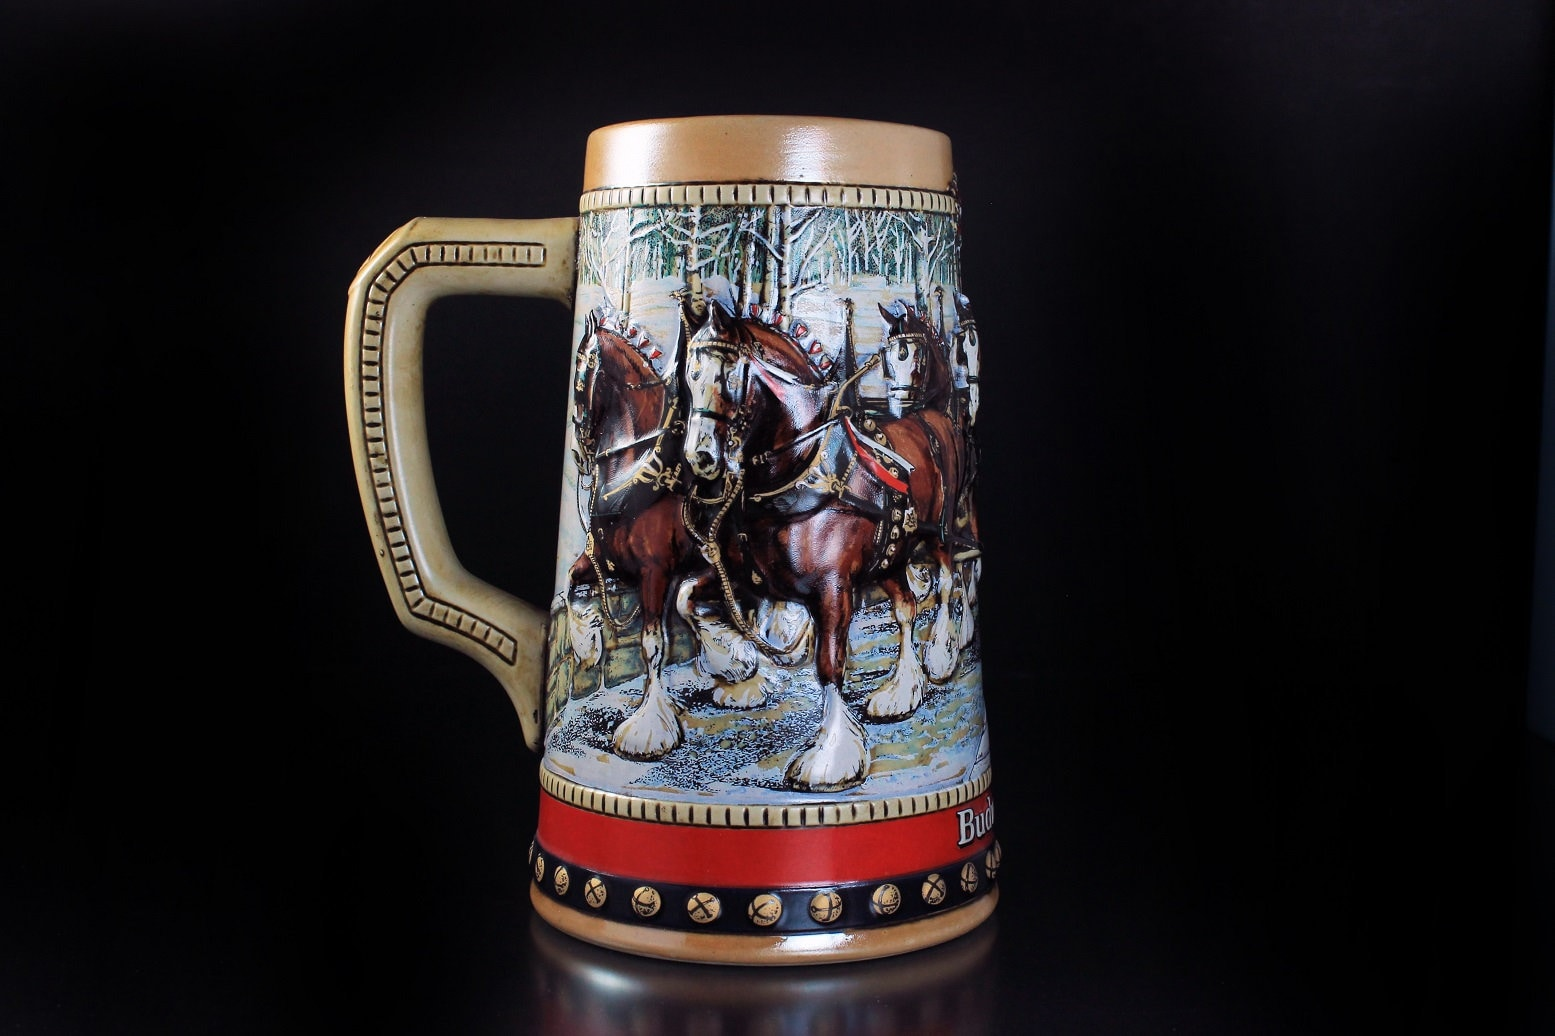 1988 Budweiser Holiday Beer Stein COBBLESTONE PASSAGE Clydesdale Christmas Mug